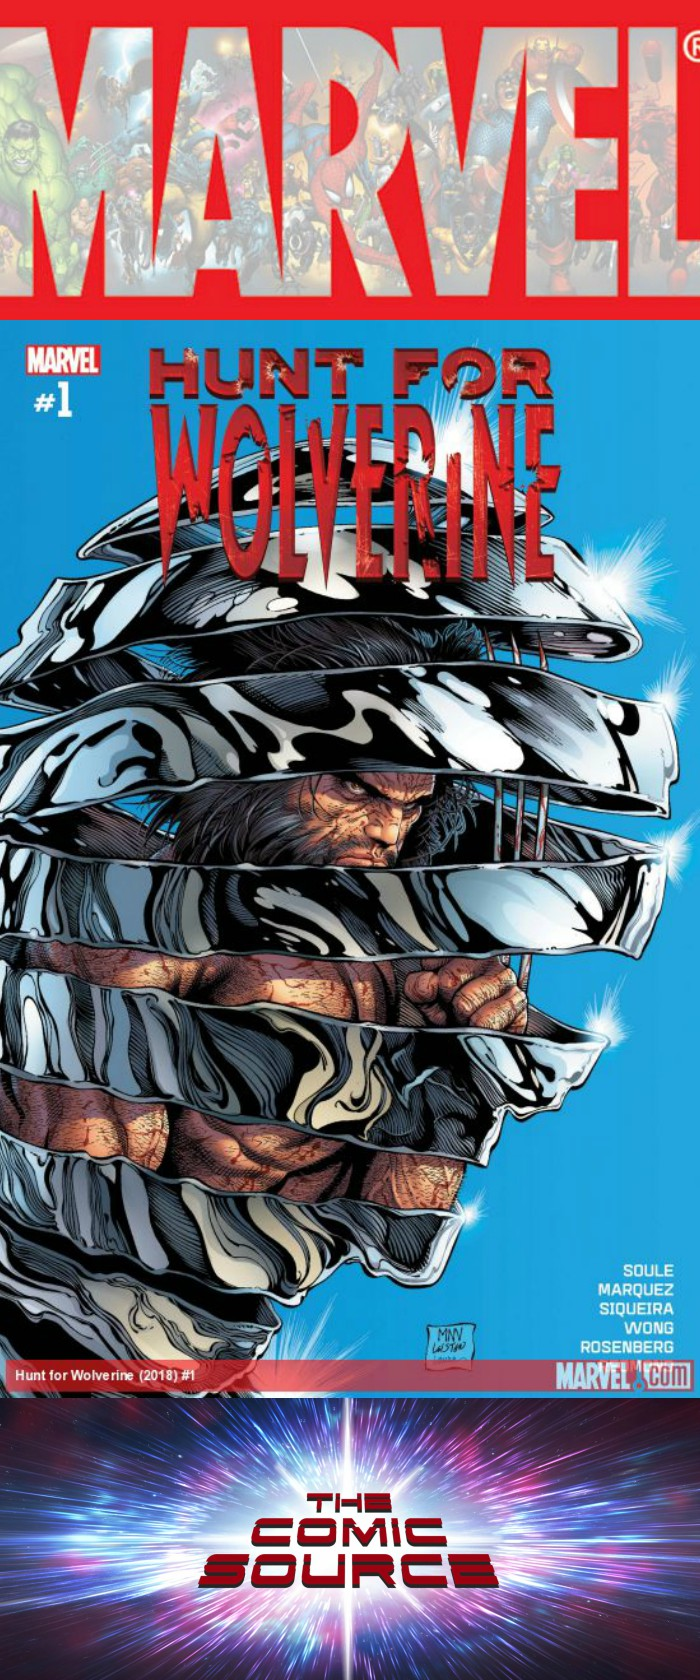 The Comic Source Podcast Episode 303 – Hunt for Wolverine Spotlight